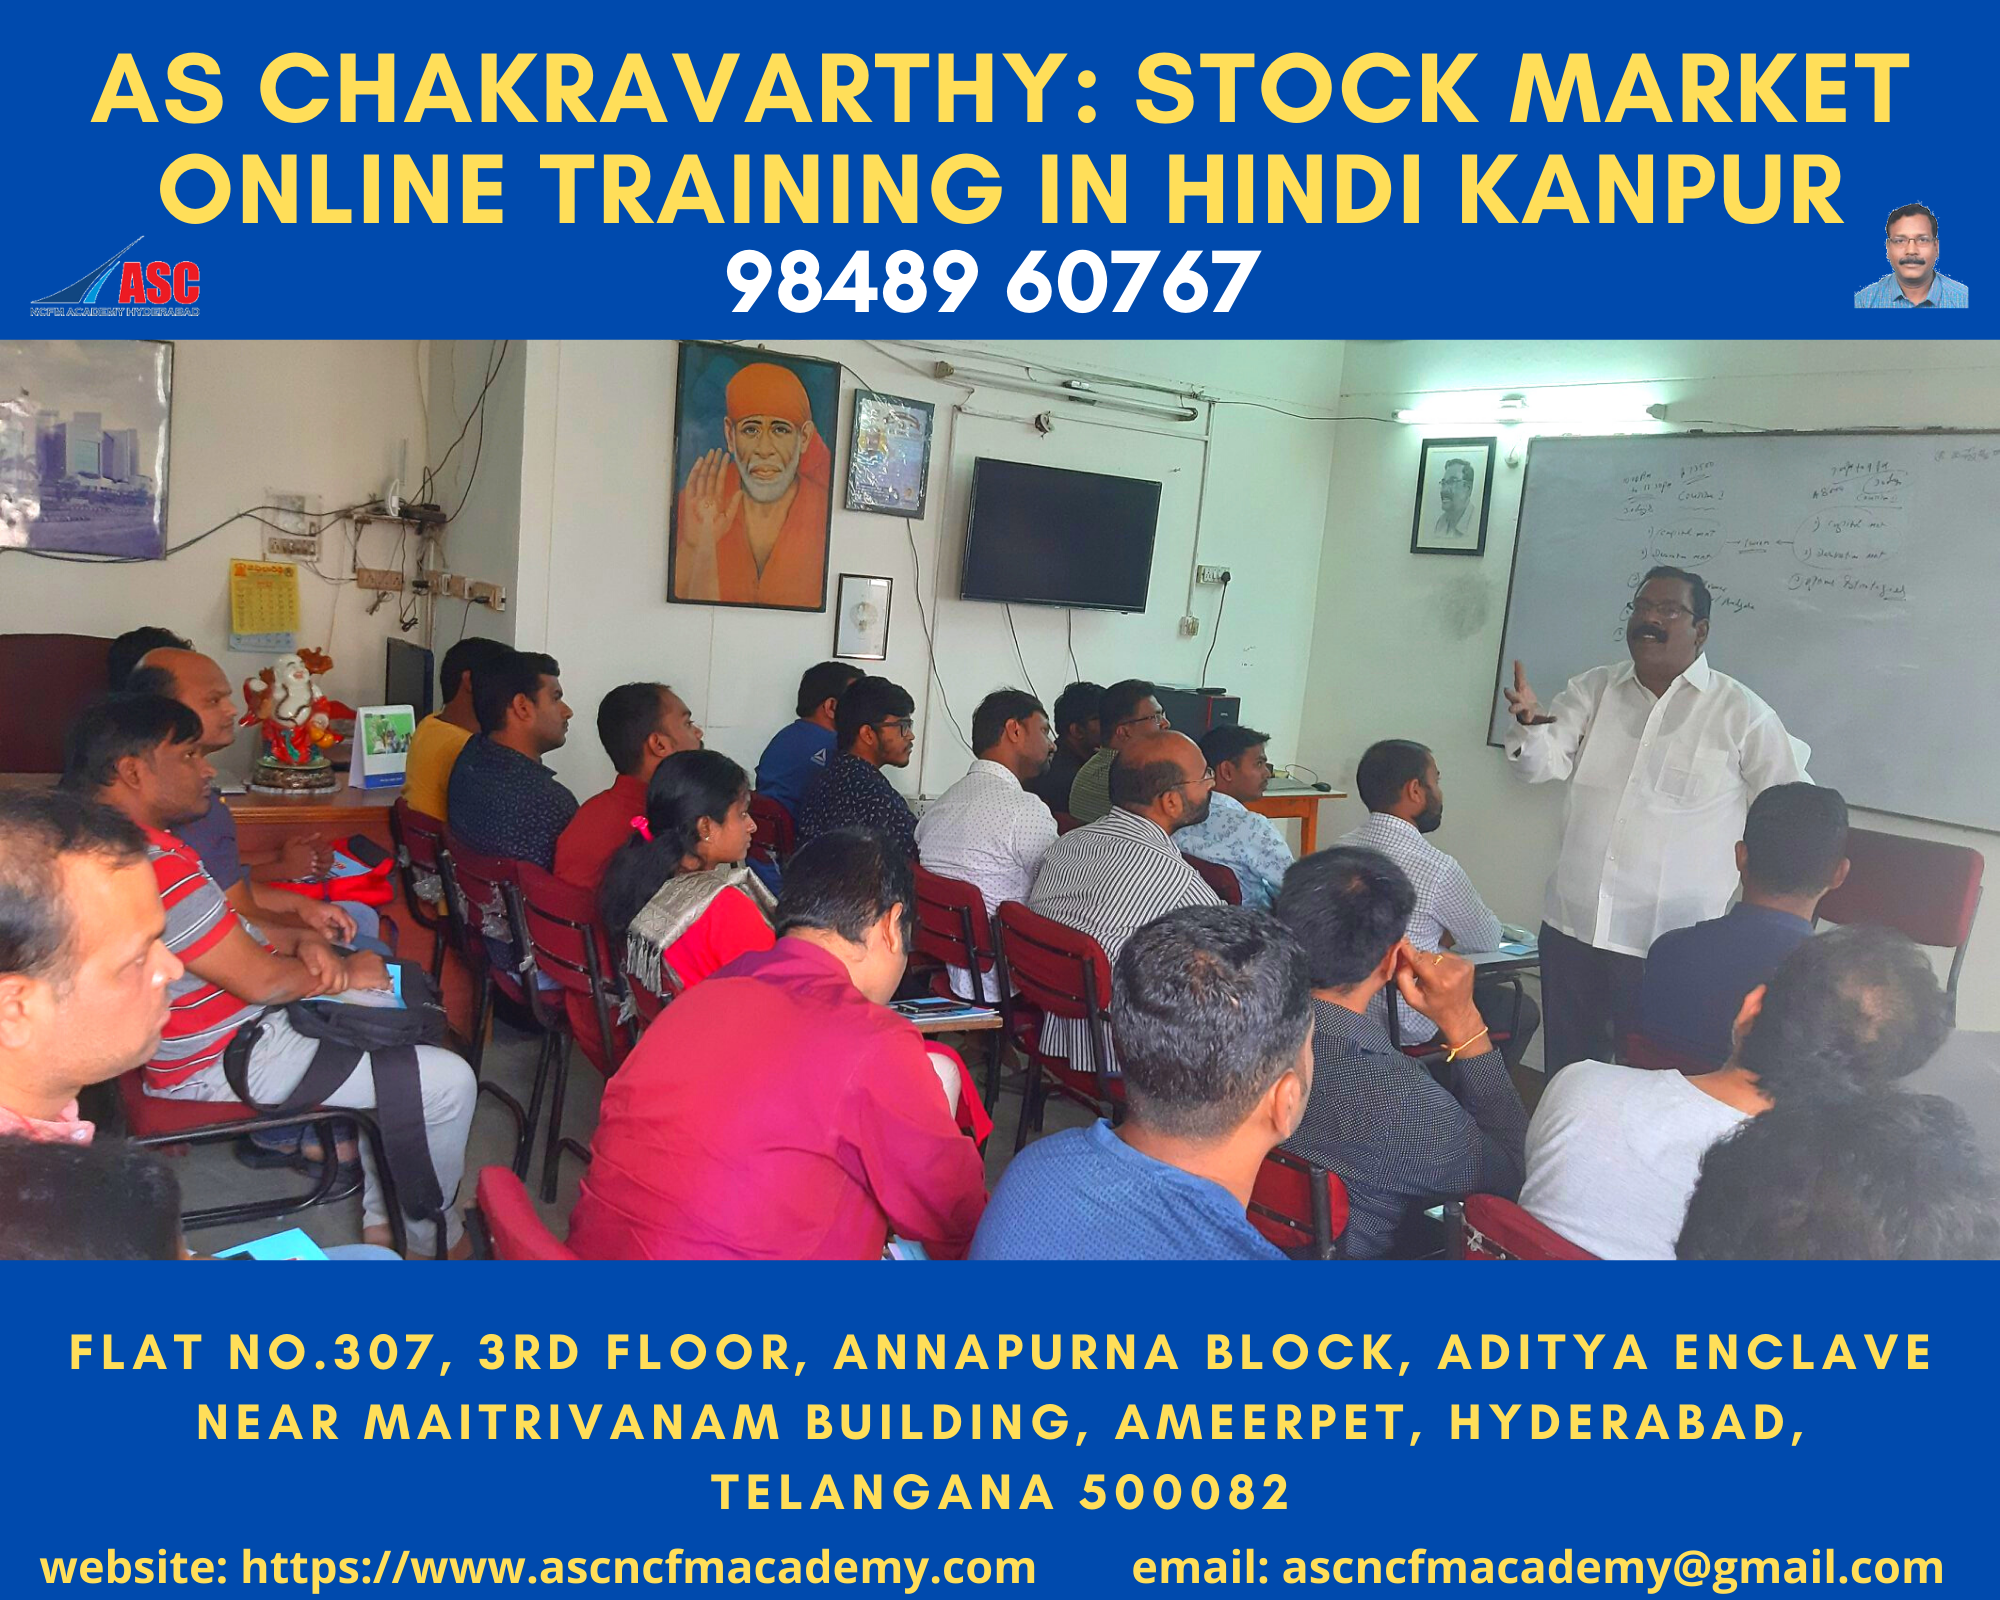 Online Stock Market Technical Training in Hindi Kanpur